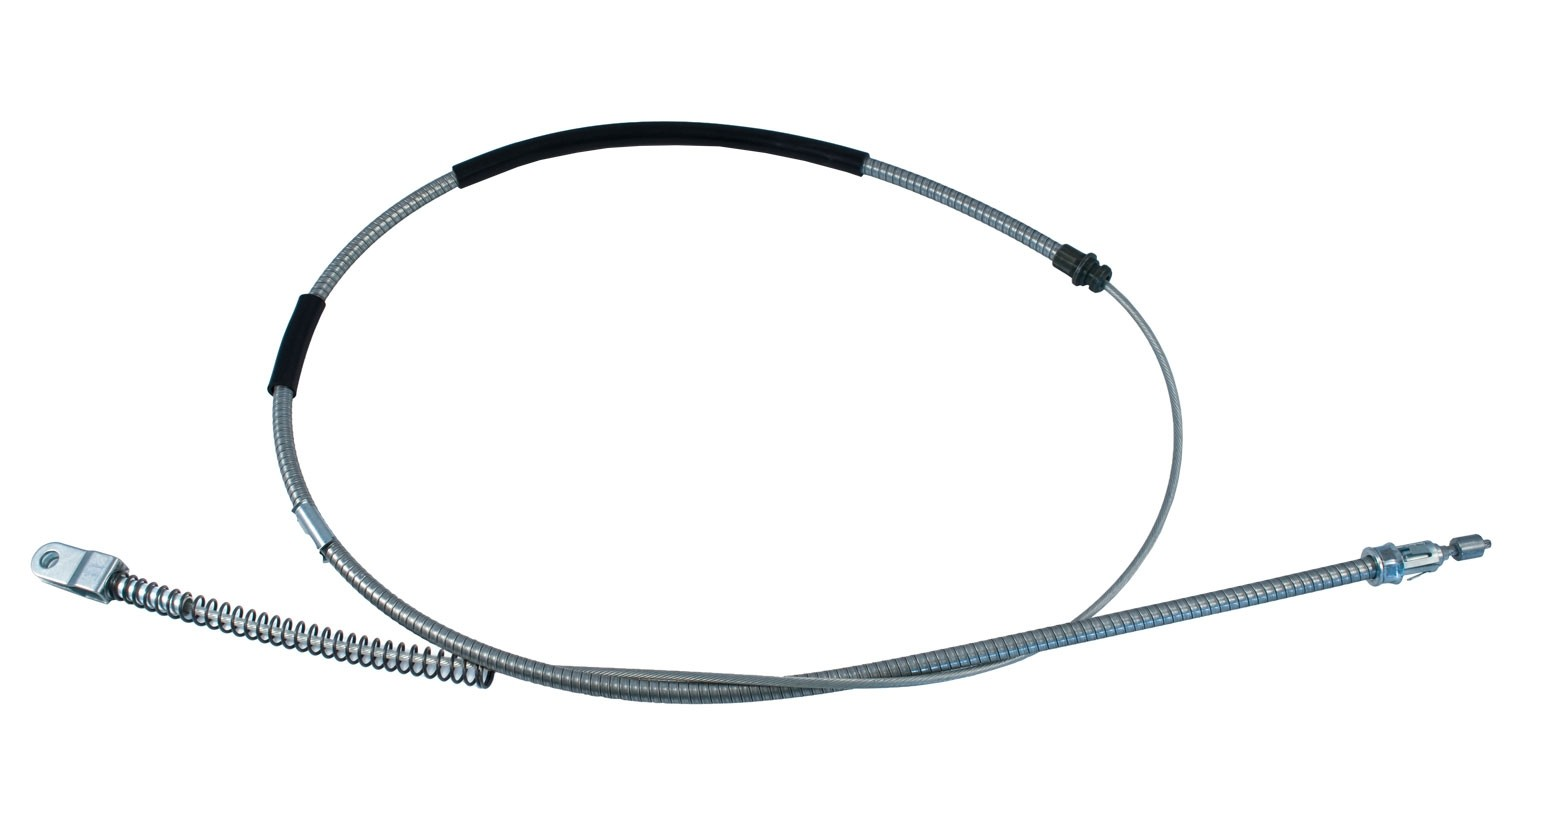 Ford Mustang Svo 70 Parking E Brake Cable